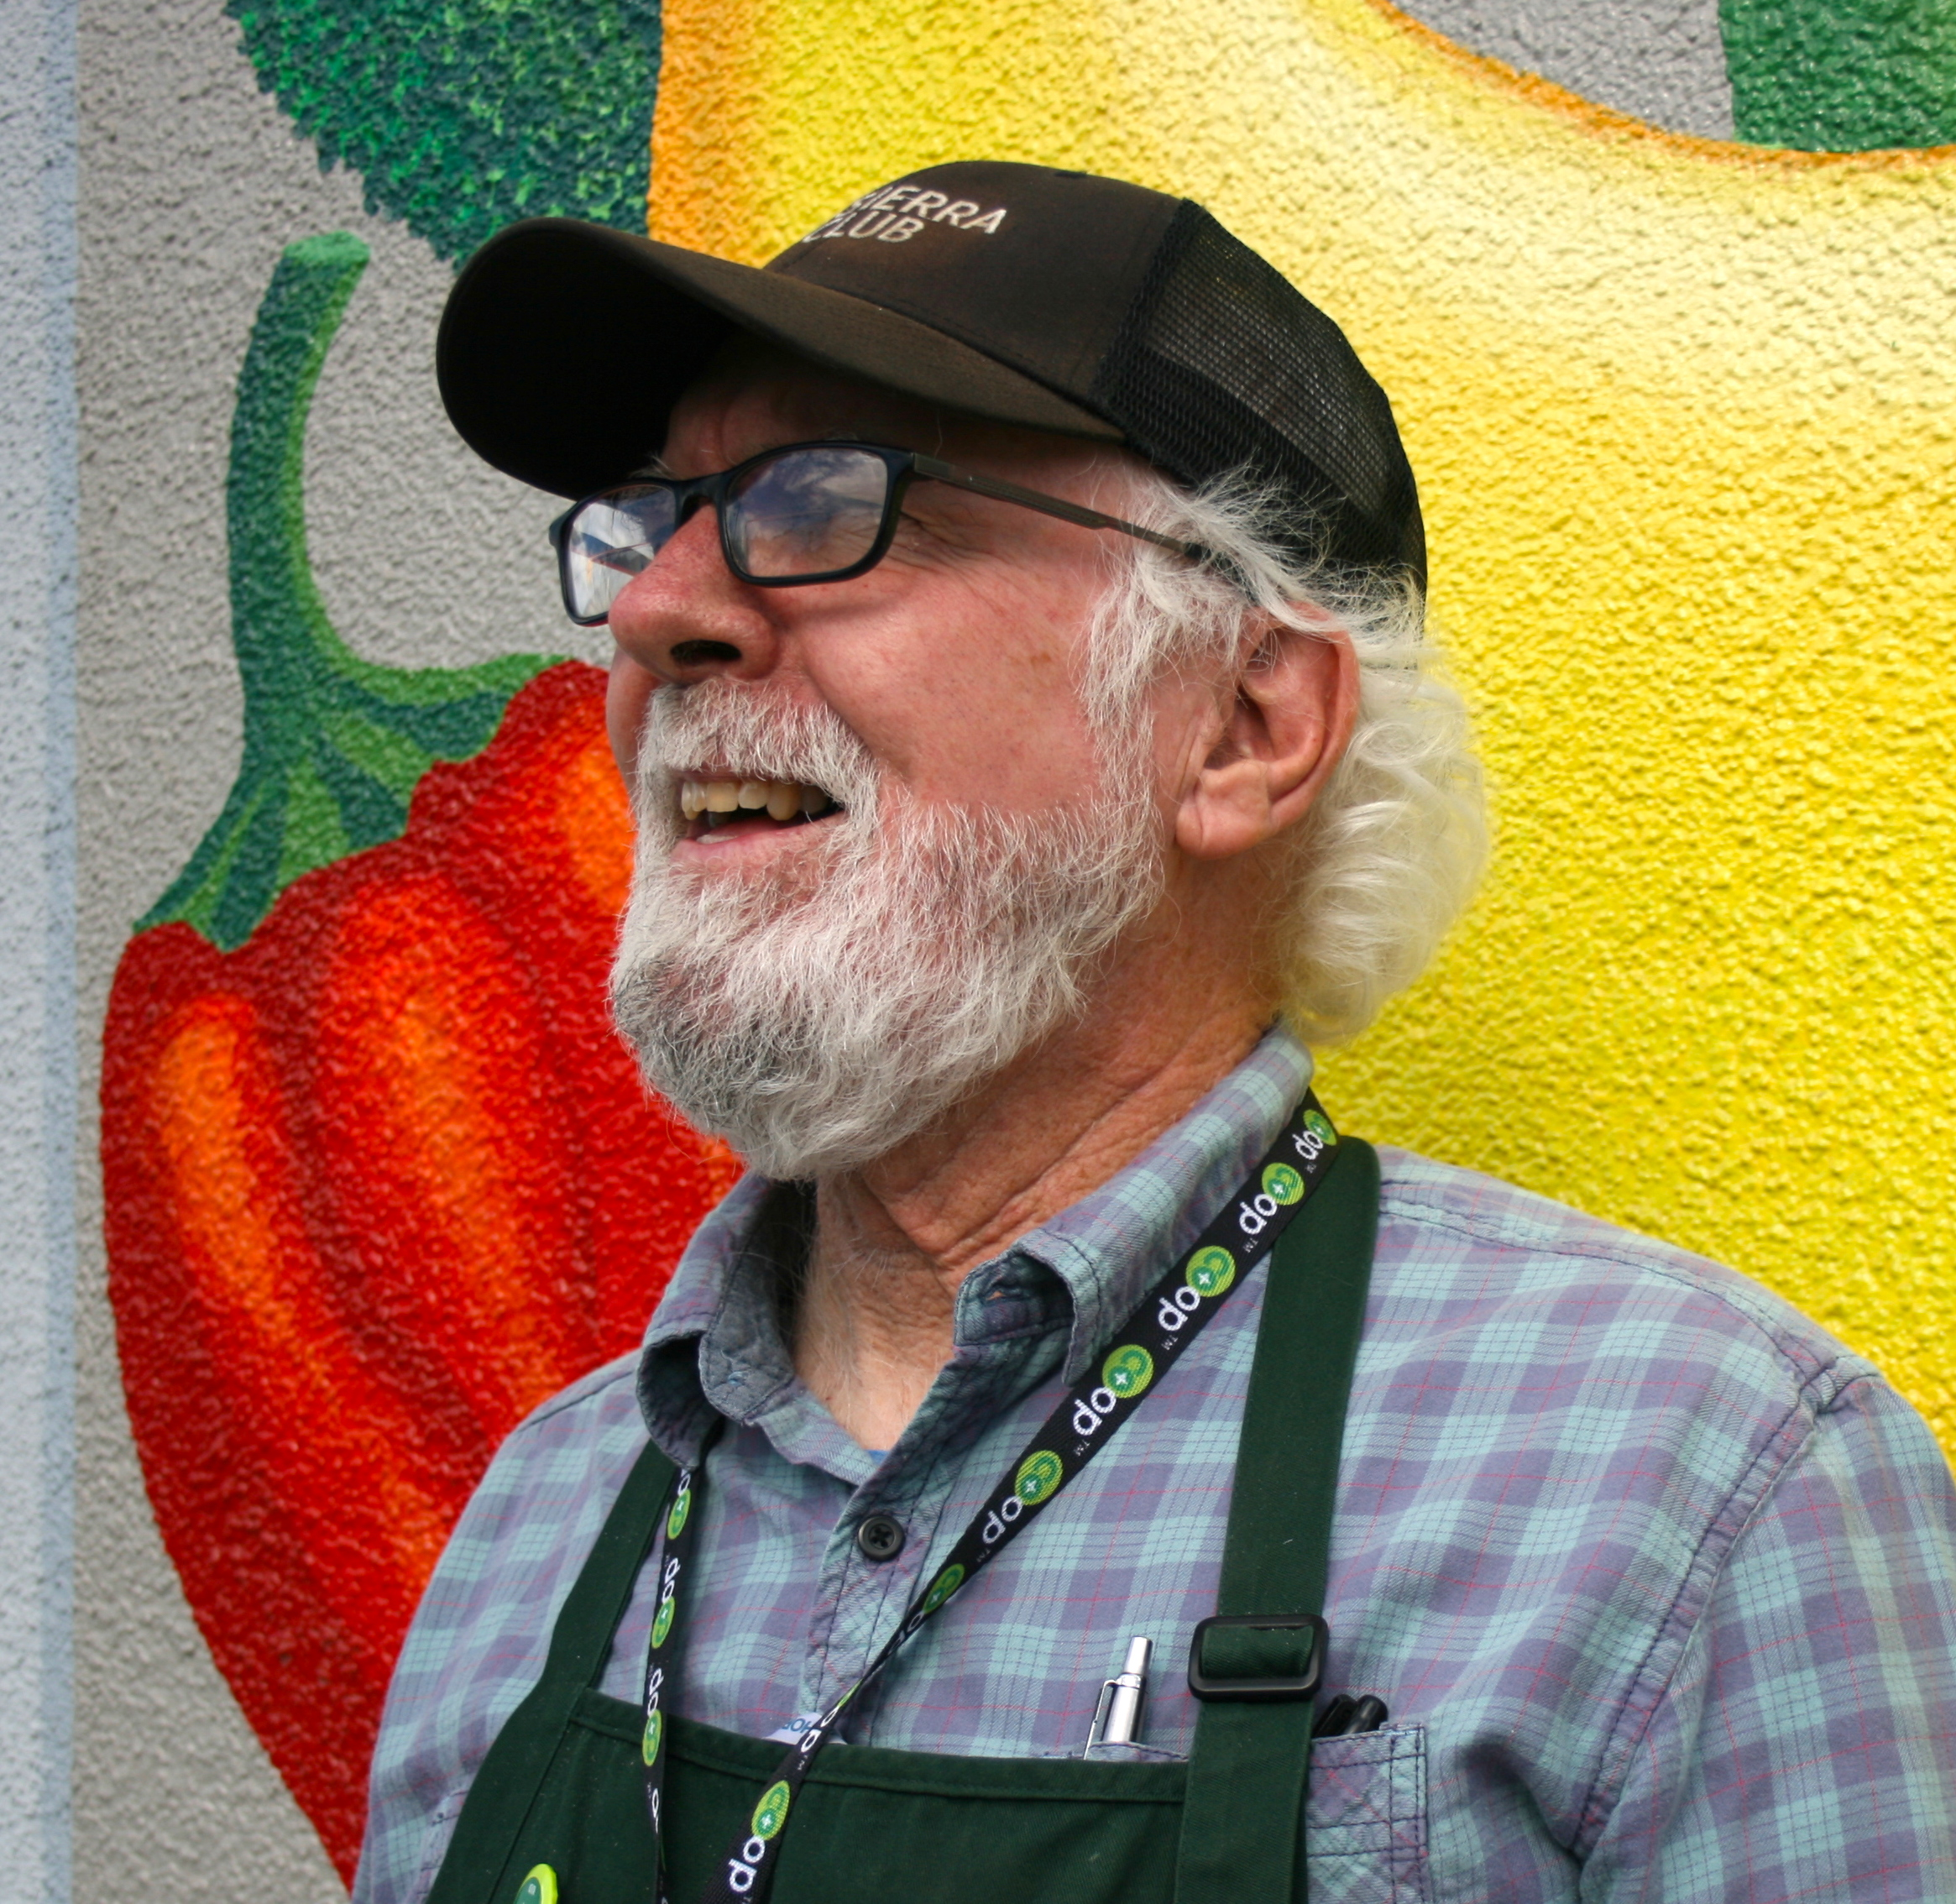 Ted Hamilton - Wellness/Herbs/Register/Grocery/Chill (a jack of all trades)